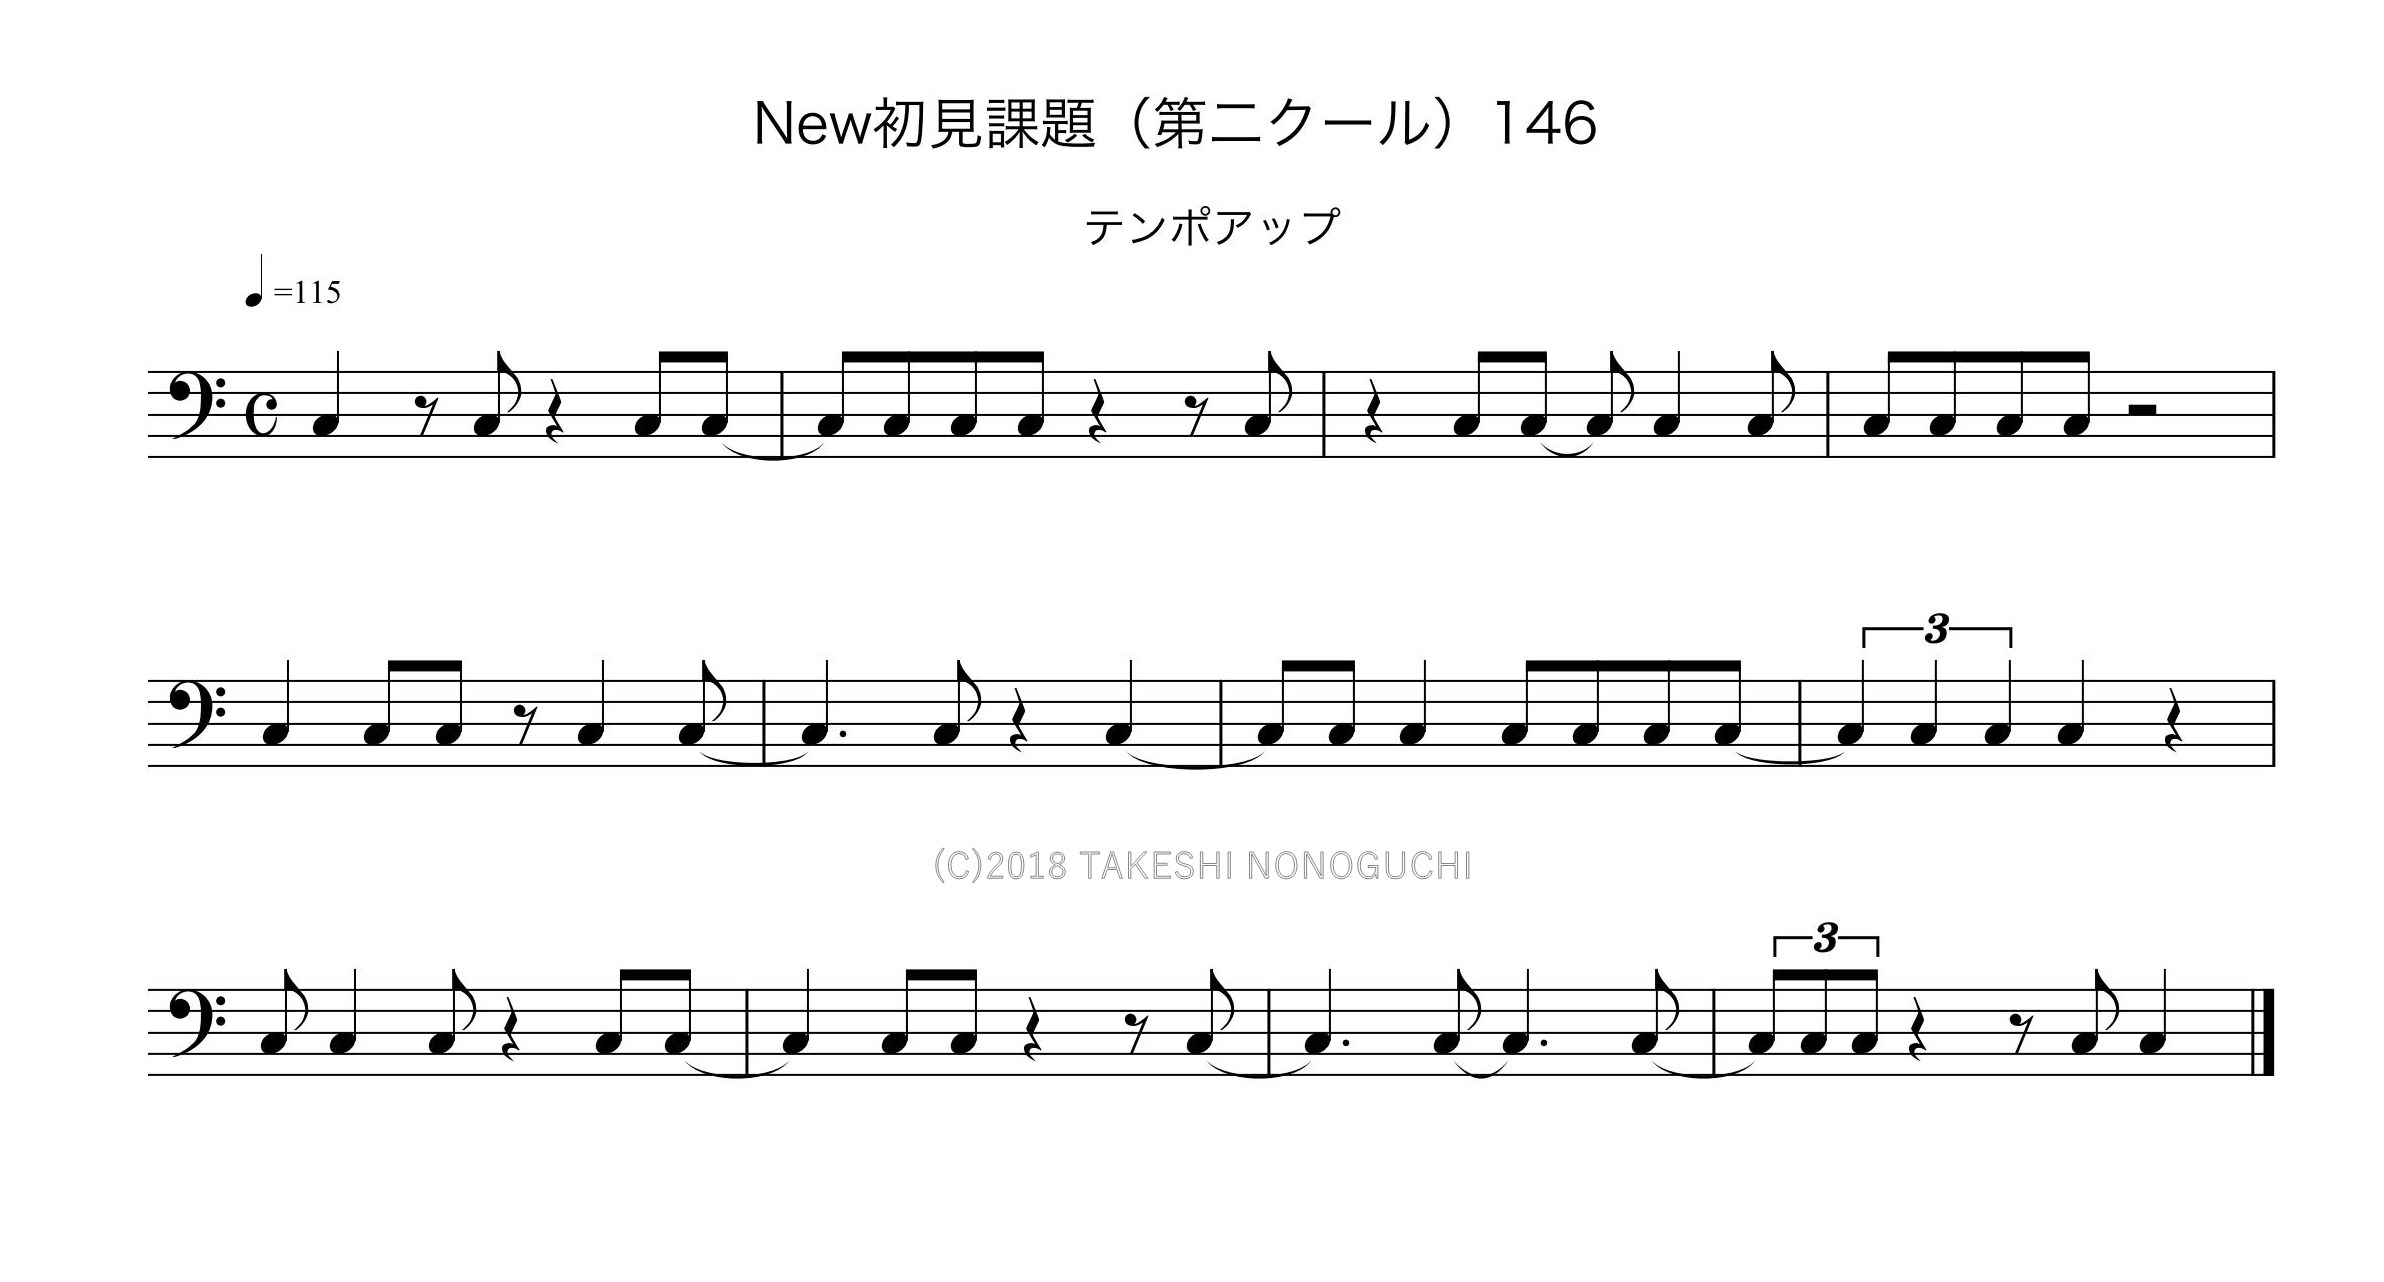 NEW初見課題(第二クール)NO.146